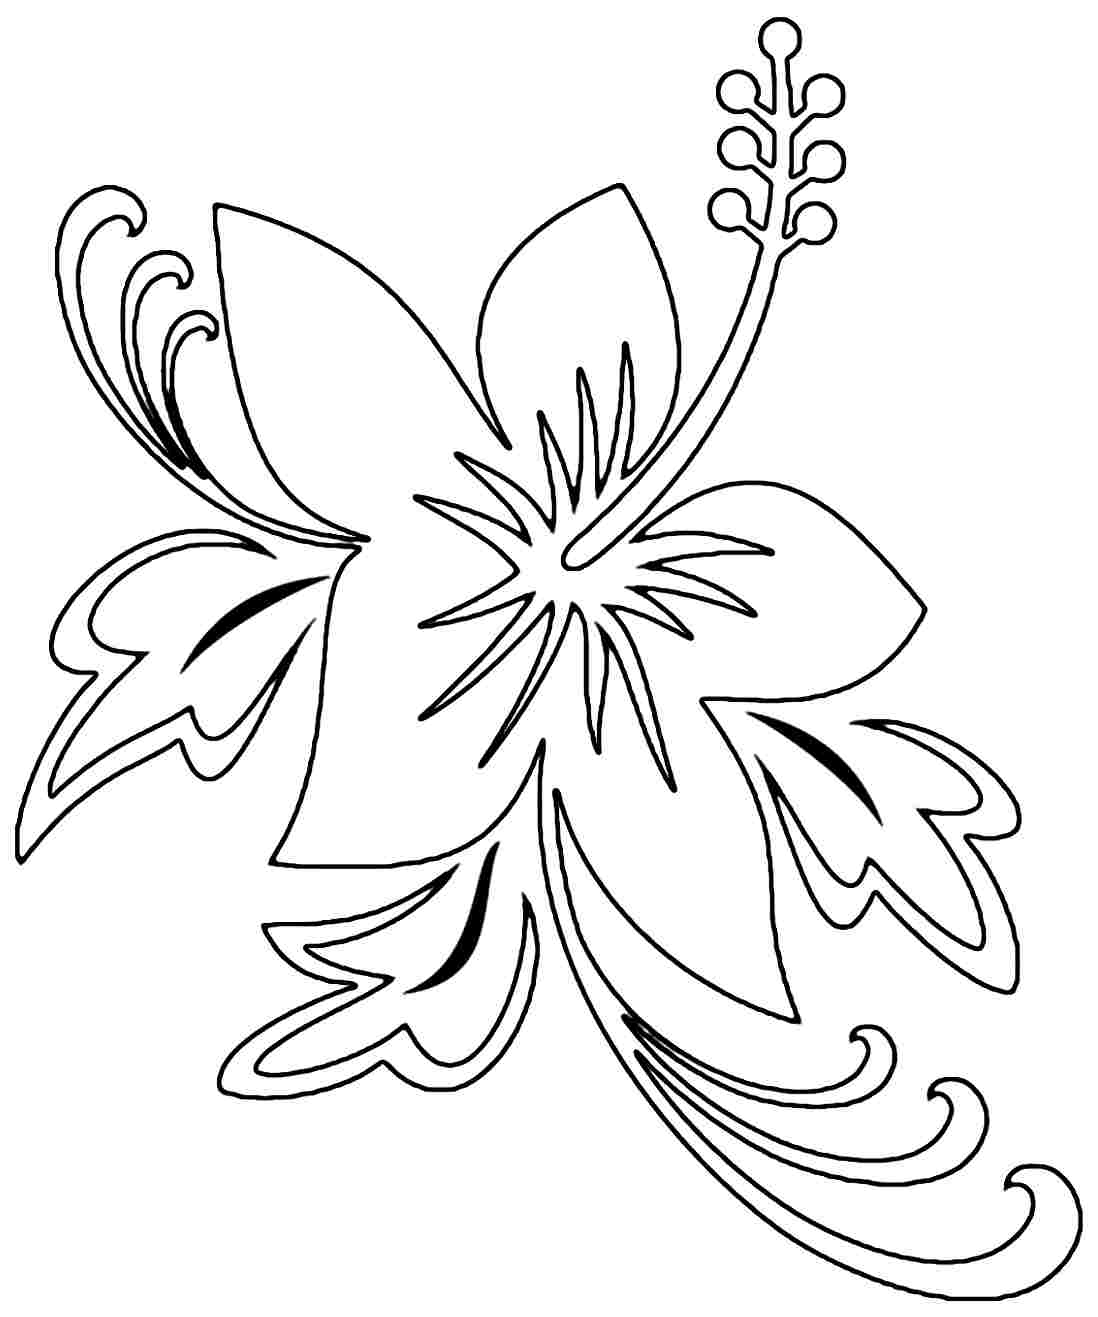 1098x1317 Printable Hibiscus Coloring Pages For Kids Hawaiian Flower